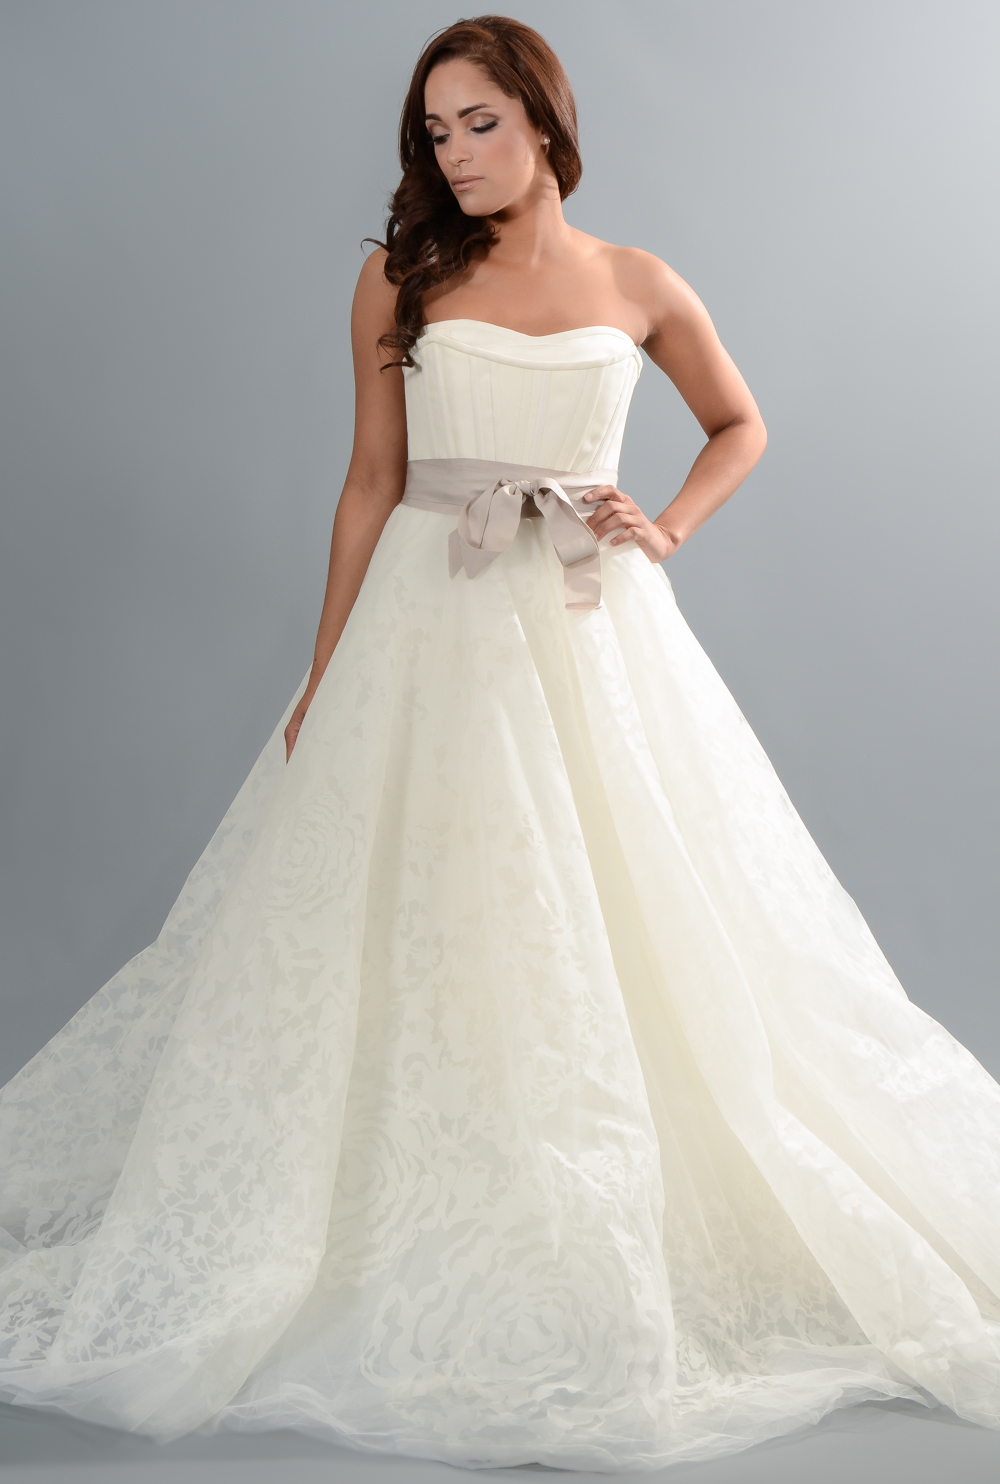 Boston wedding vendor spotlight vows bridal outlet for Cheap wedding dresses boston